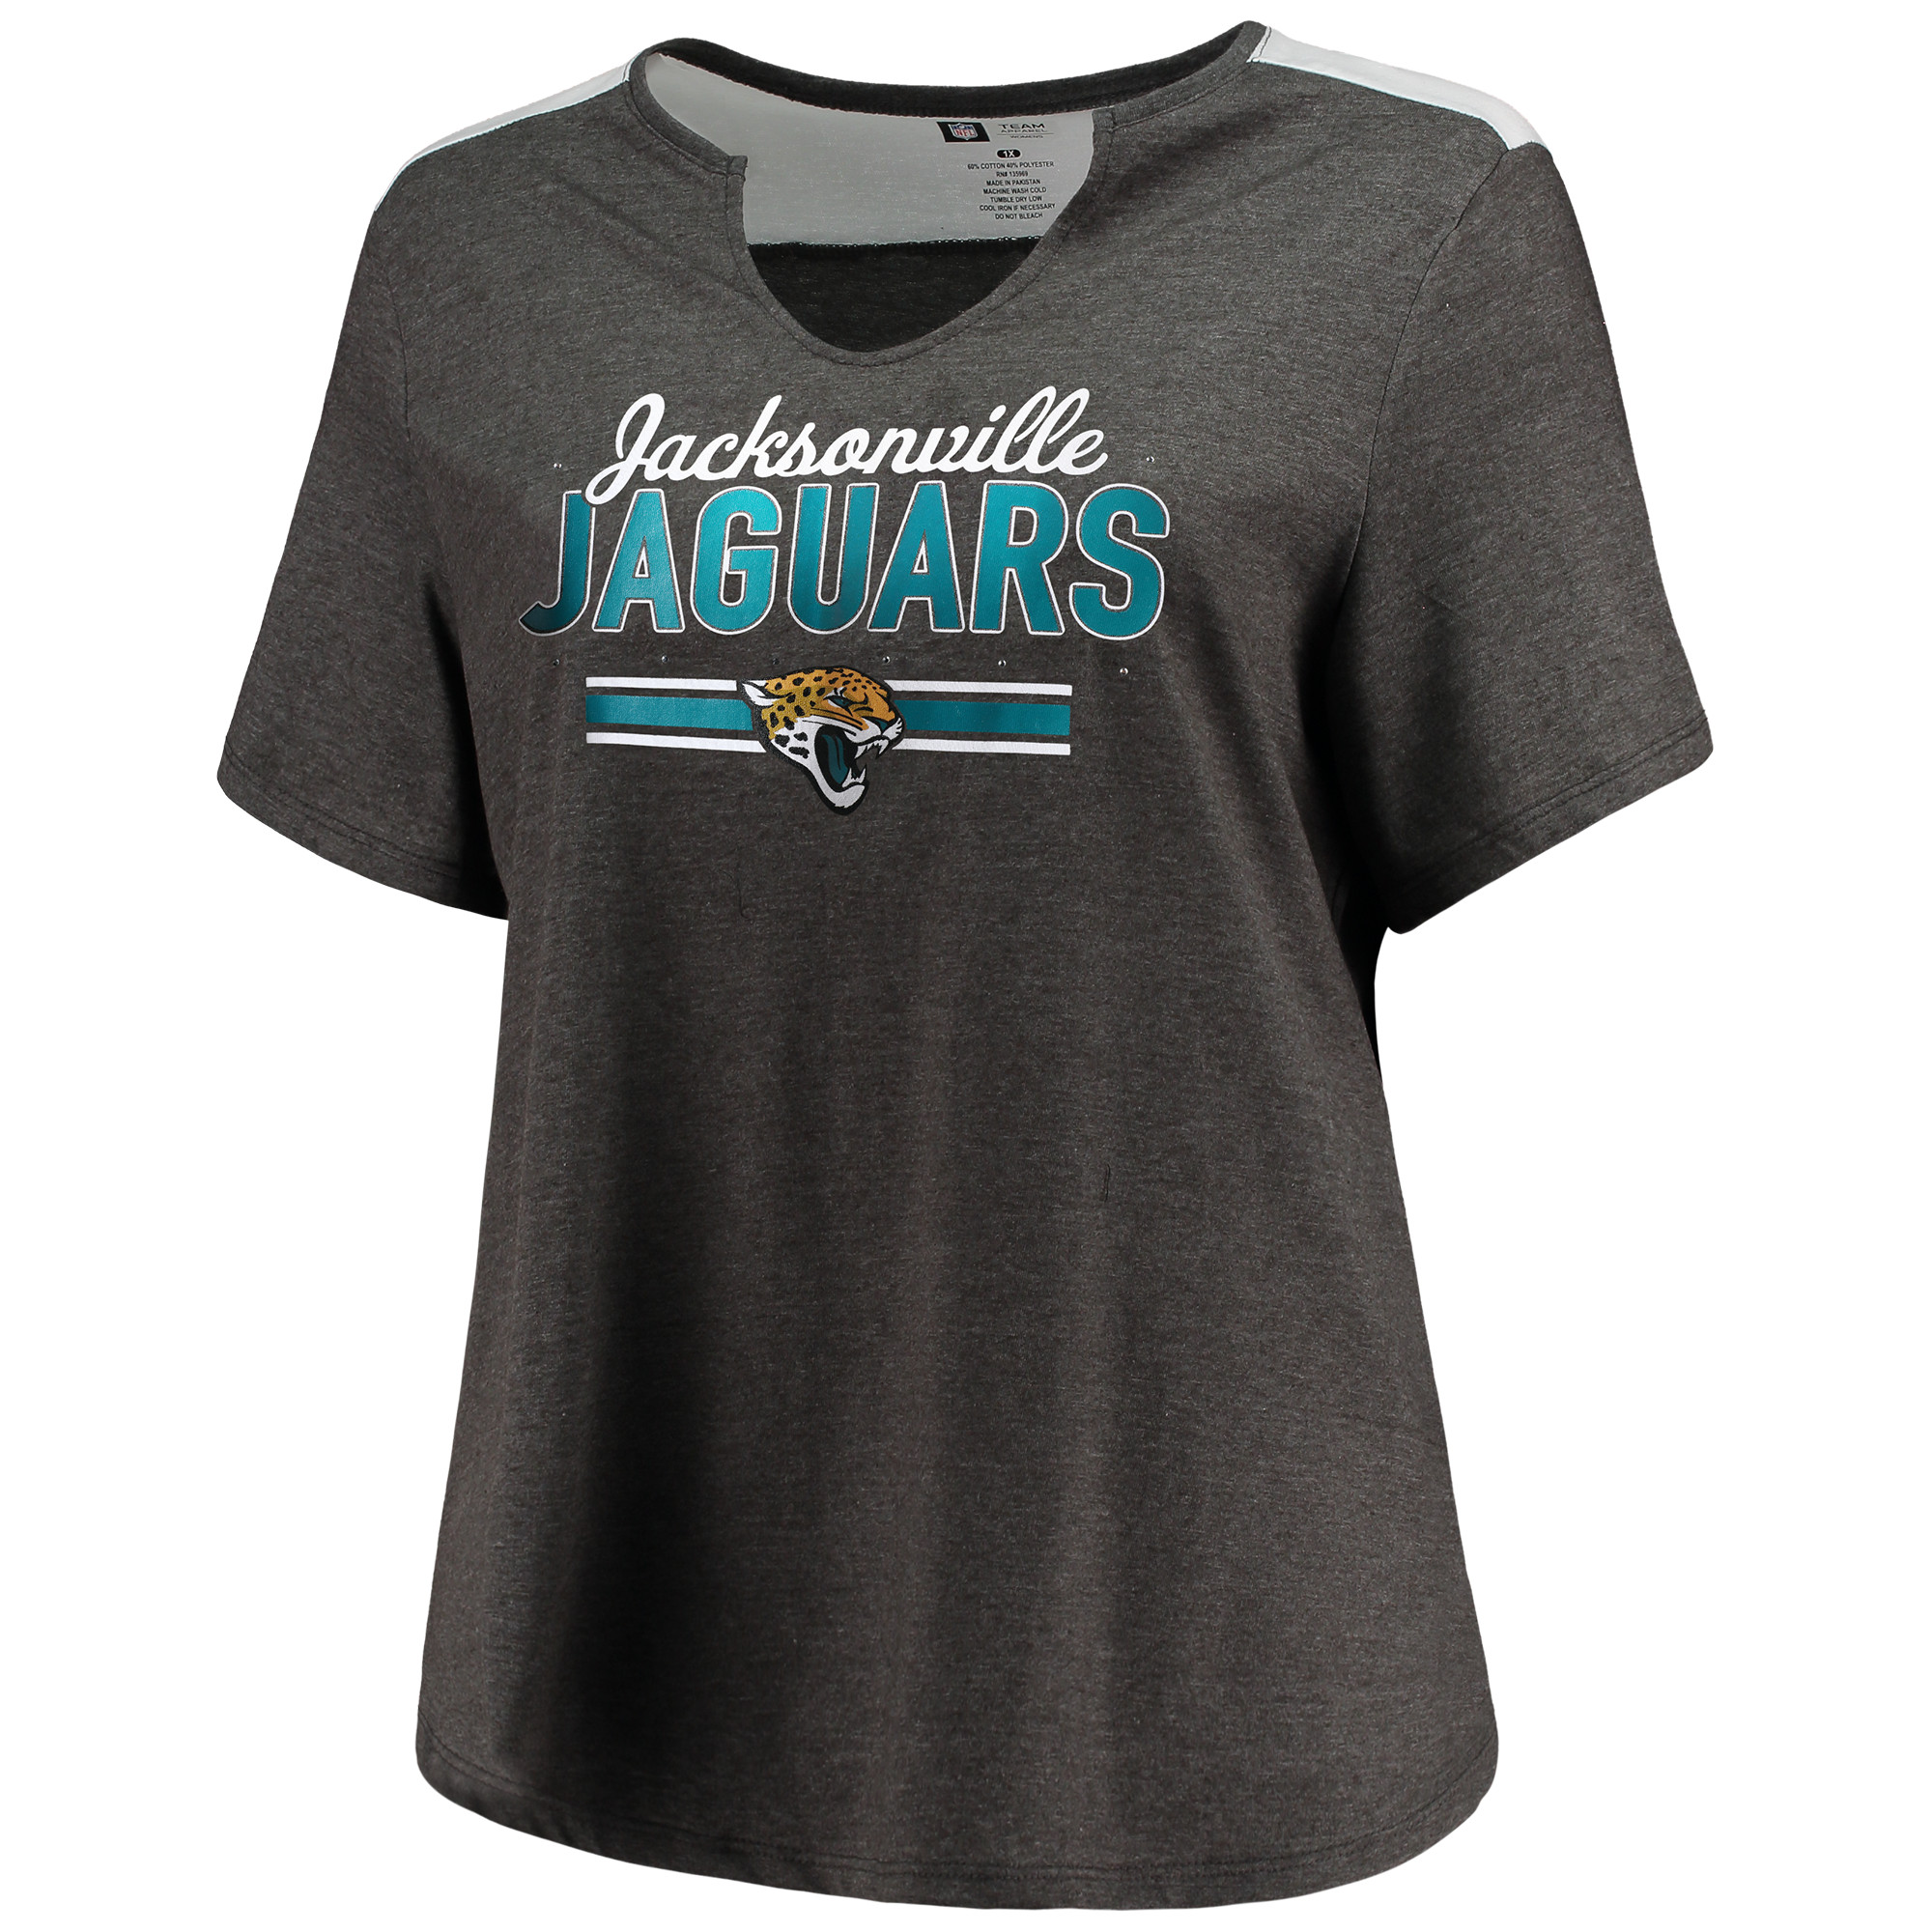 Women's Majestic Heathered Charcoal Jacksonville Jaguars Notch Neck Plus Size T-Shirt